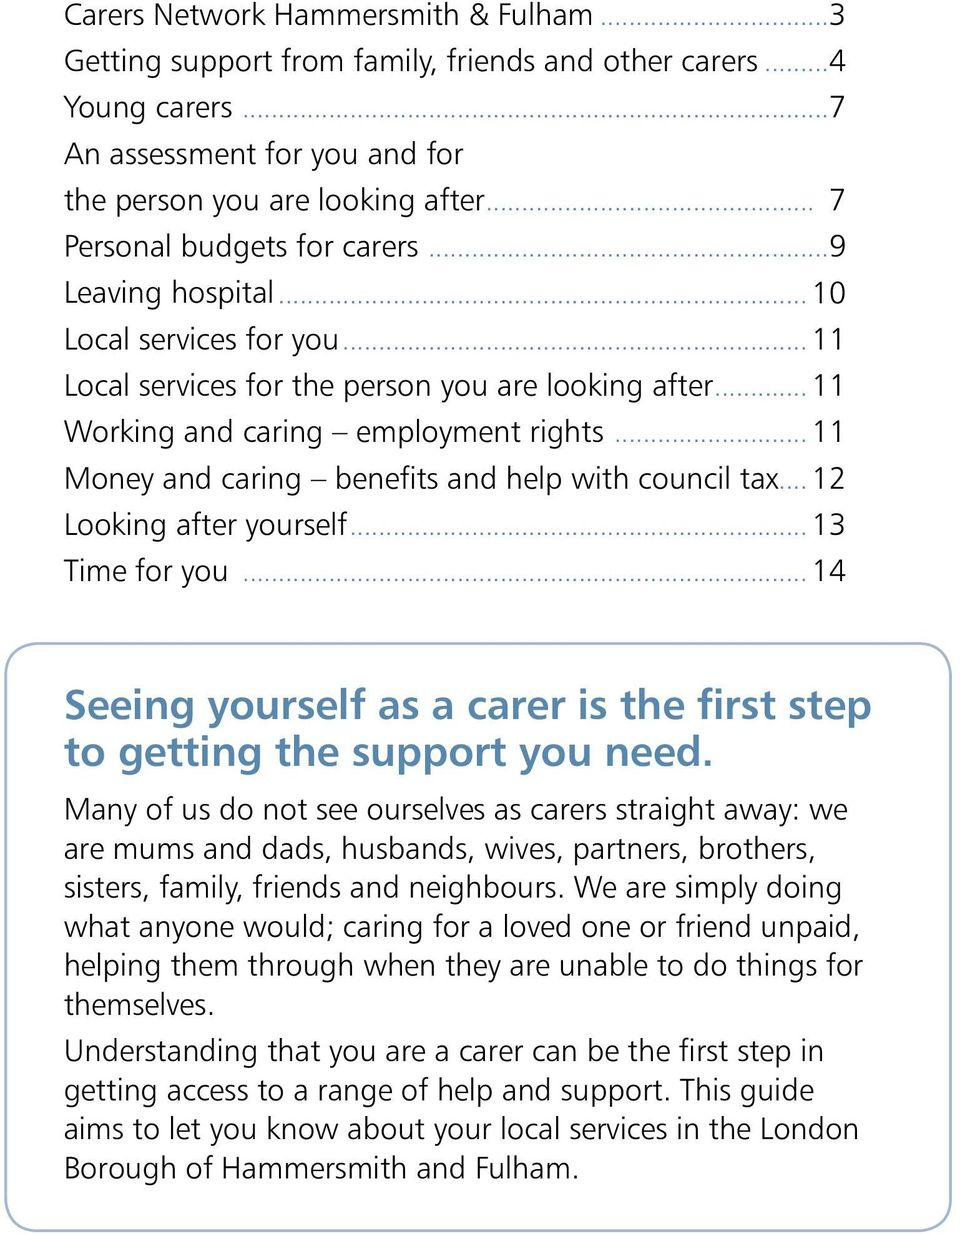 .. 11 Money and caring benefits and help with council tax... 12 Looking after yourself... 13 Time for you... 14 Seeing yourself as a carer is the first step to getting the support you need.